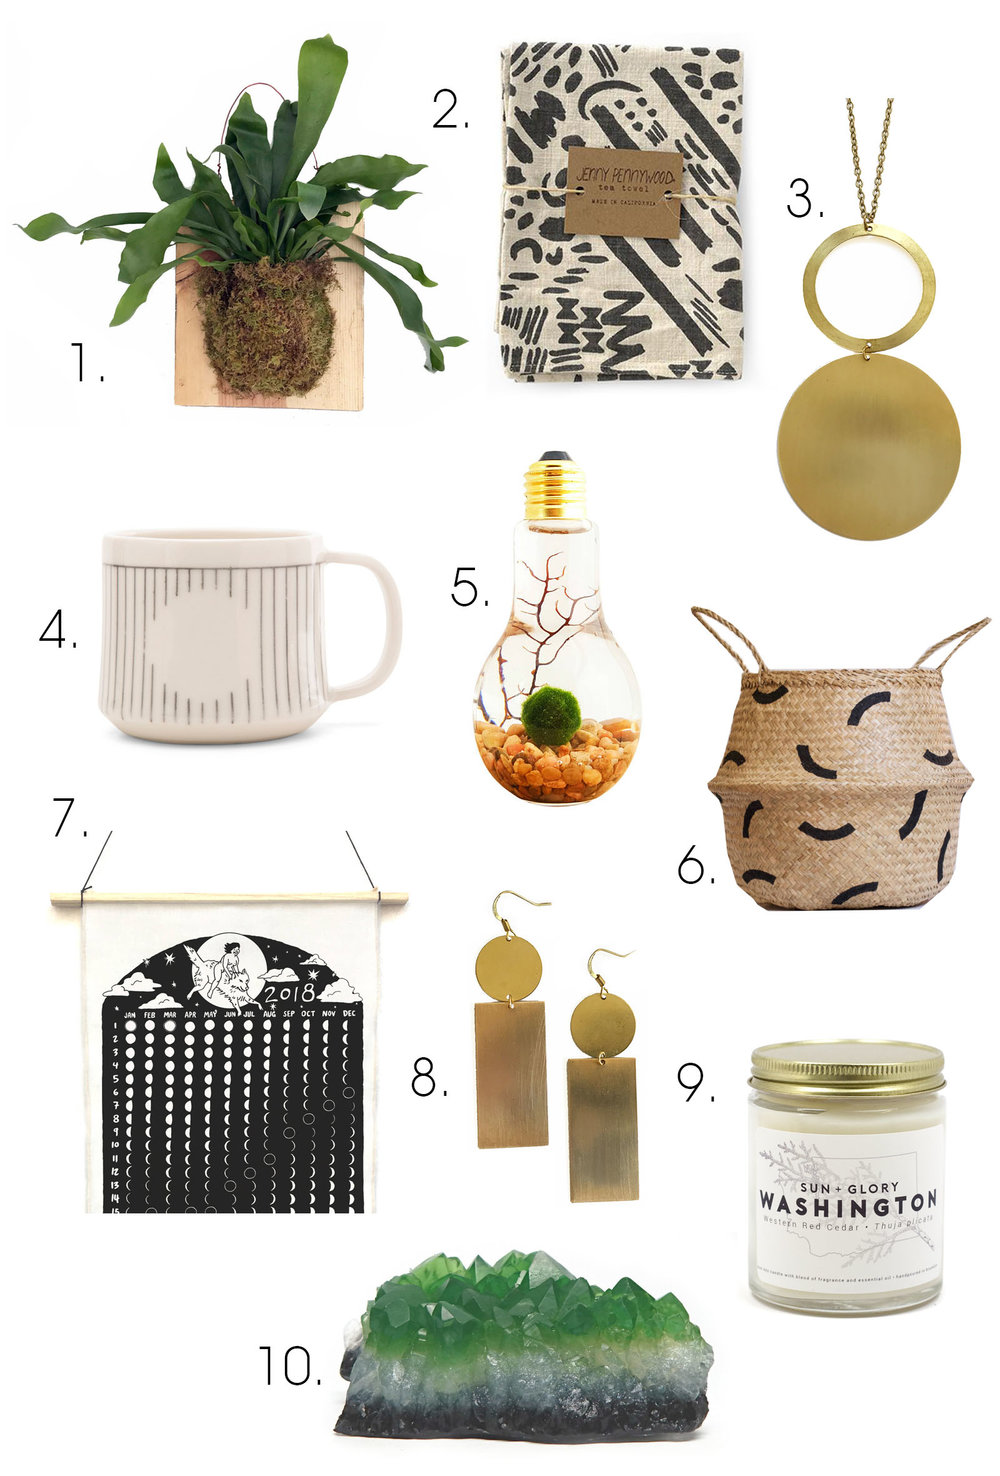 2017 Holiday Gift Guide - Support Small Businesses